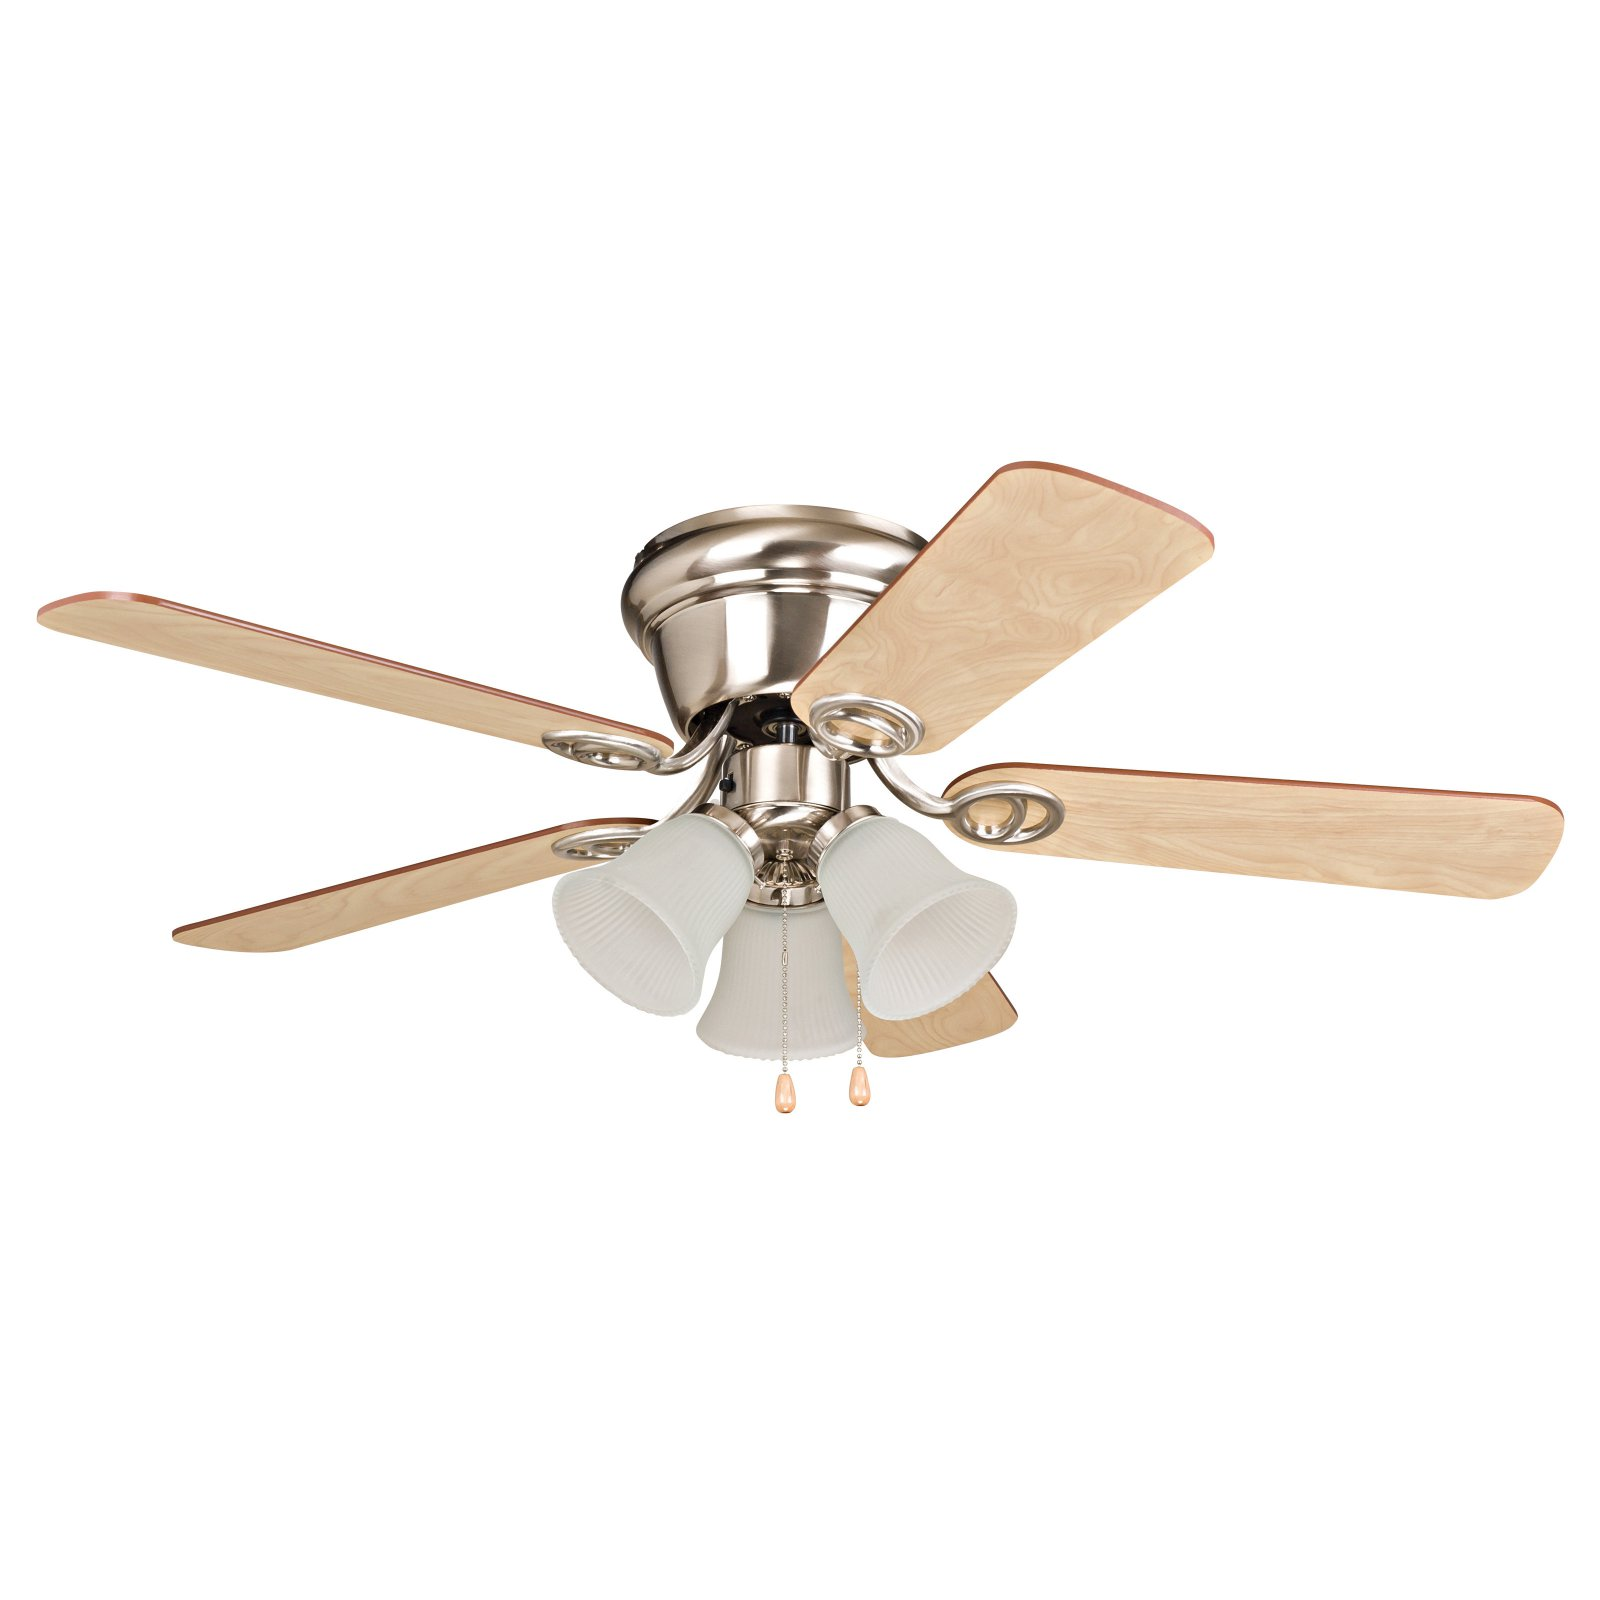 Tulip Ceiling Fan Product Features